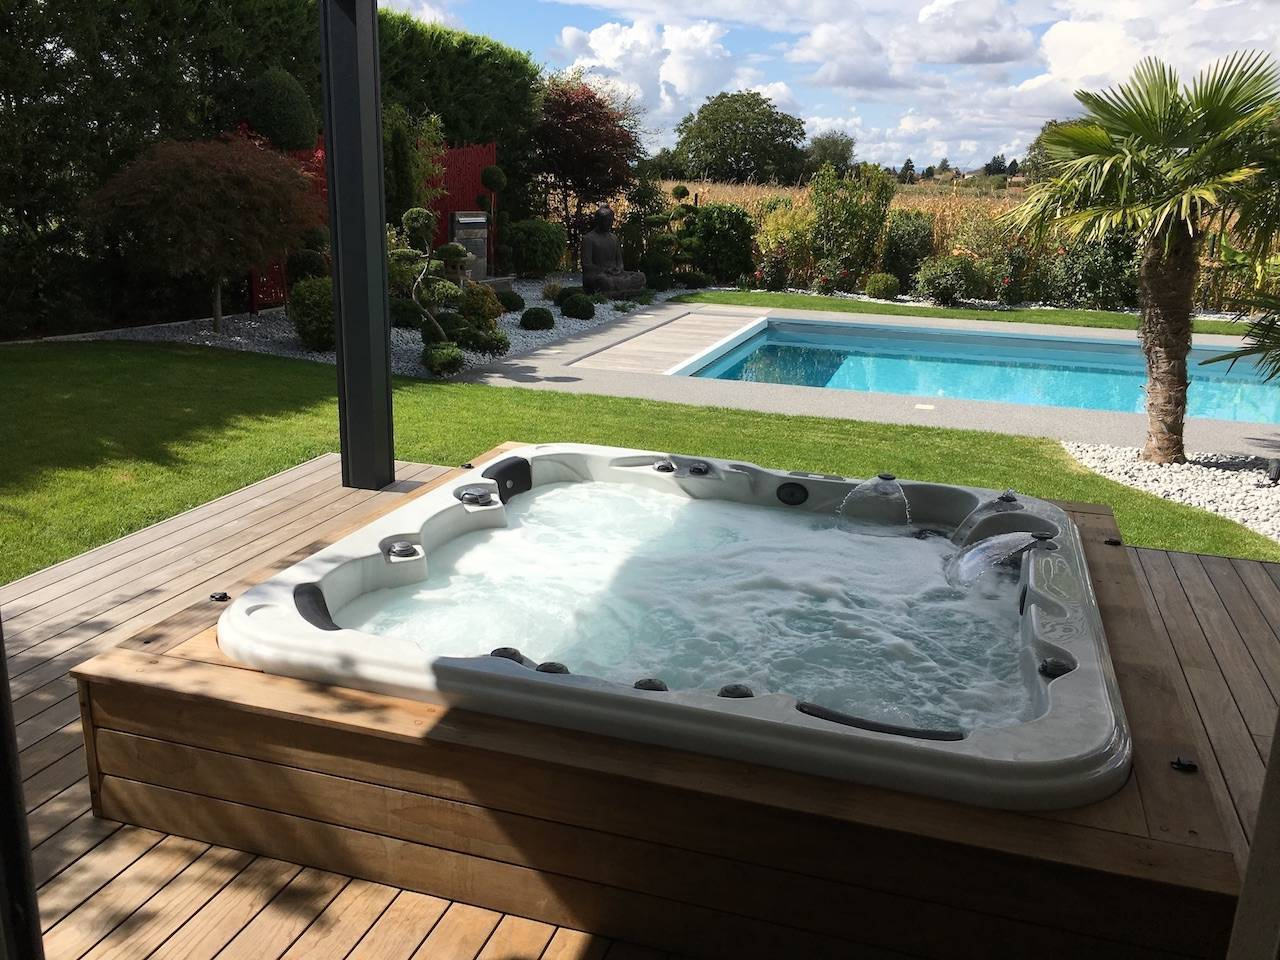 Vente Spa Jacuzzi Exterieur Pas Cher Toulouse Be Well Canada Spa